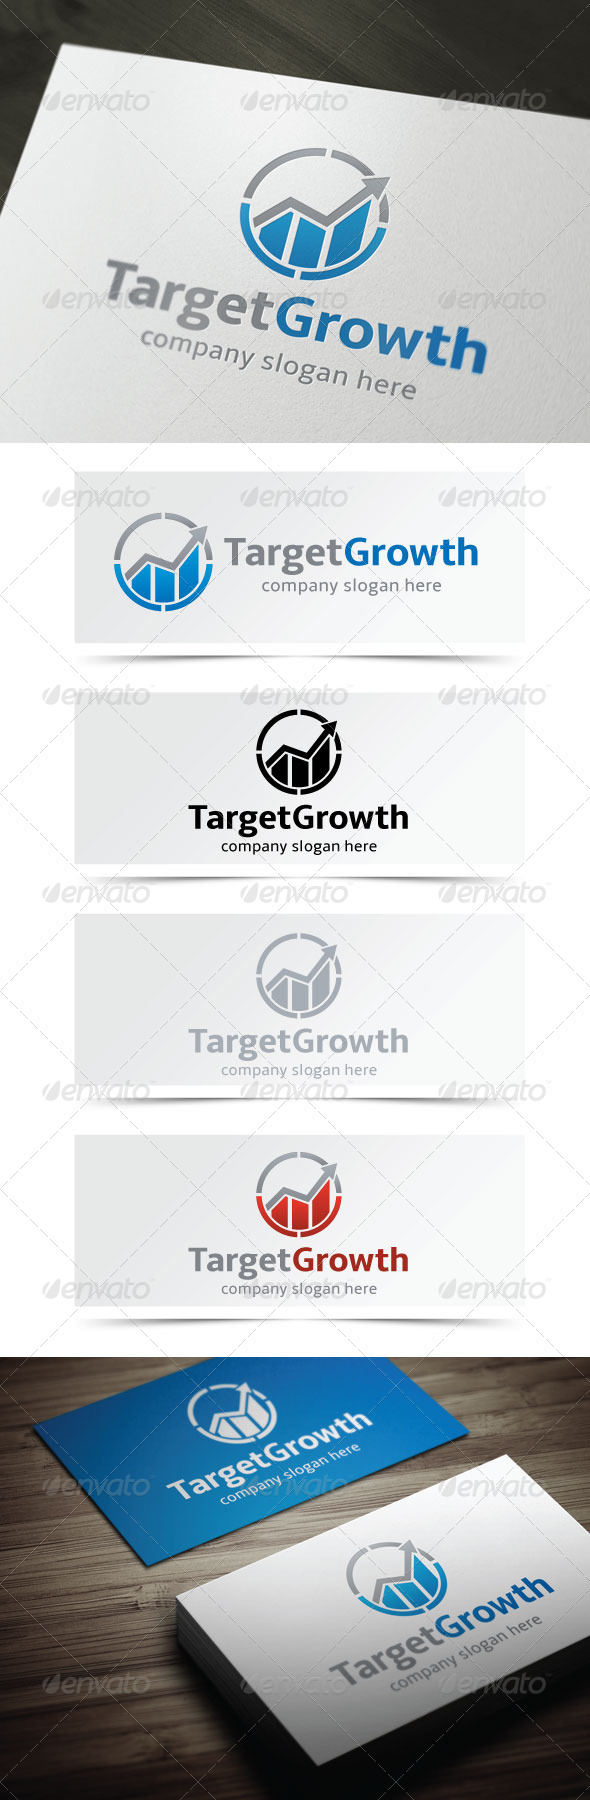 GraphicRiver Target Growth 4623401